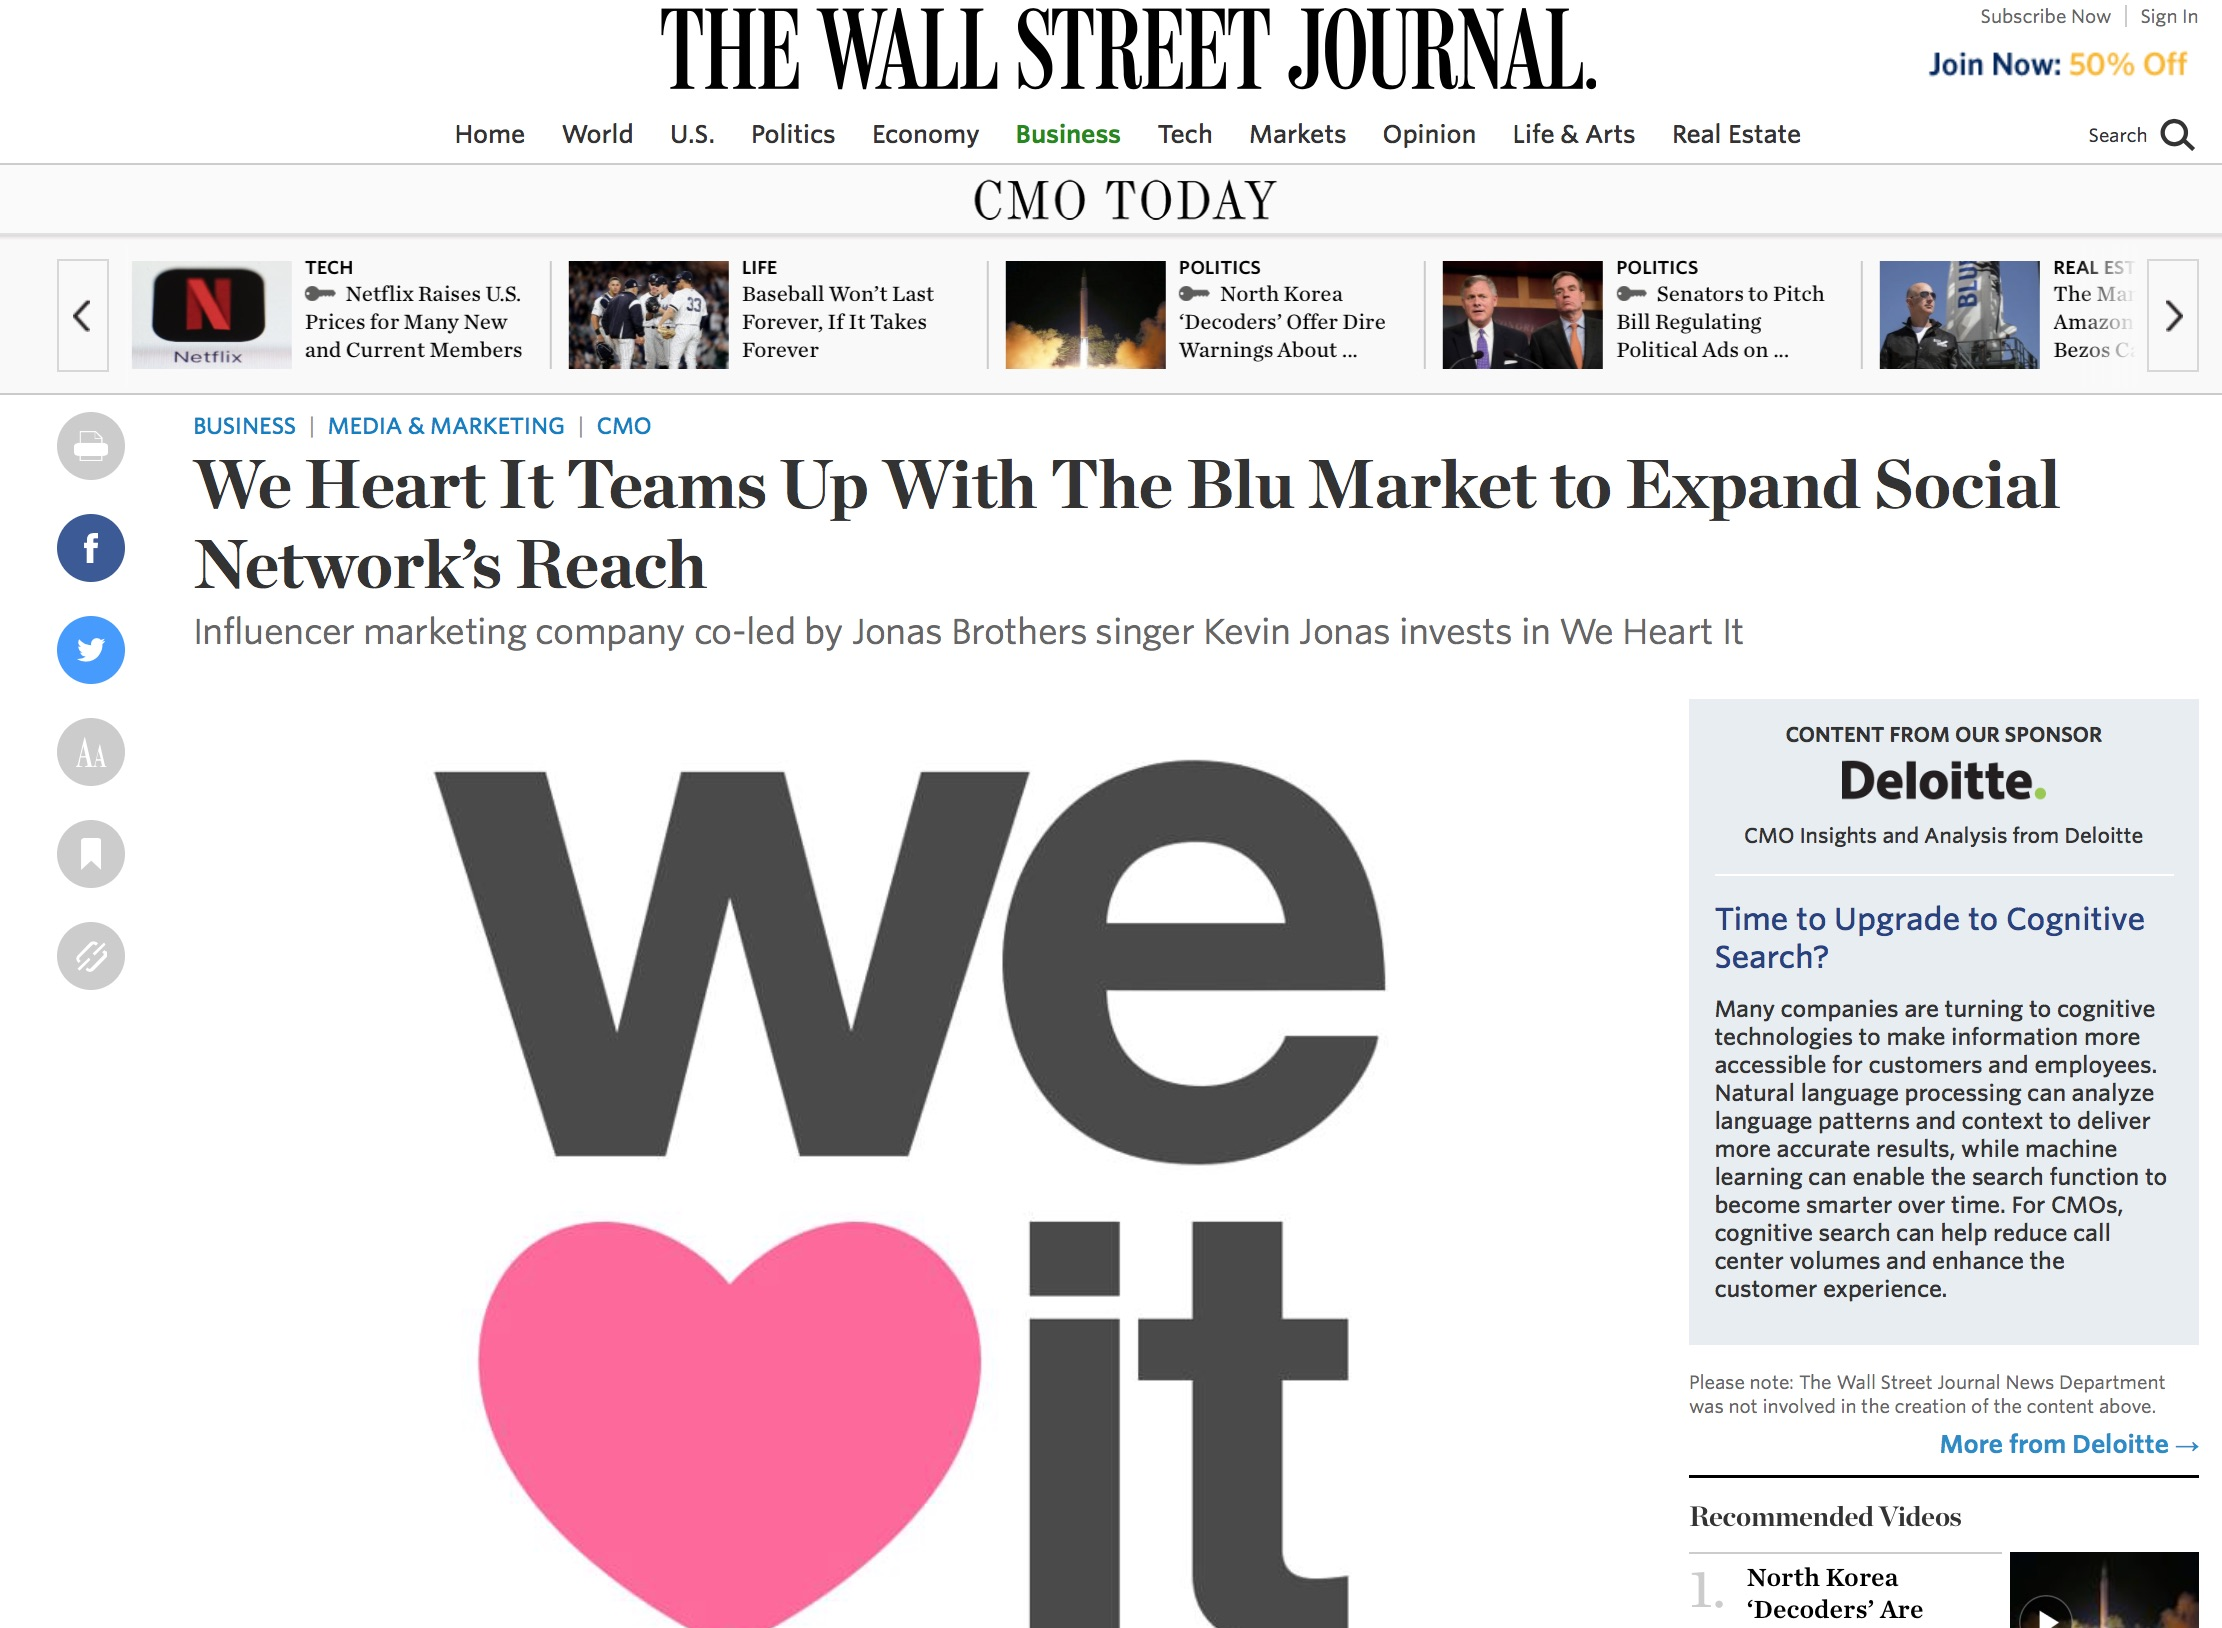 The largest social media destination for young women, We Heart It, hired SpecOps to secure national media coverage. The company teamed up with Kevin Jonas (Jonas Brothers), co-CEO of Blu Marketing. We delivered with a feature in the Wall Street Journal. Link to the feature:  https://www.wsj.com/articles/we-heart-it-teams-up-with-the-blu-market-to-expand-social-networks-reach-1464879600